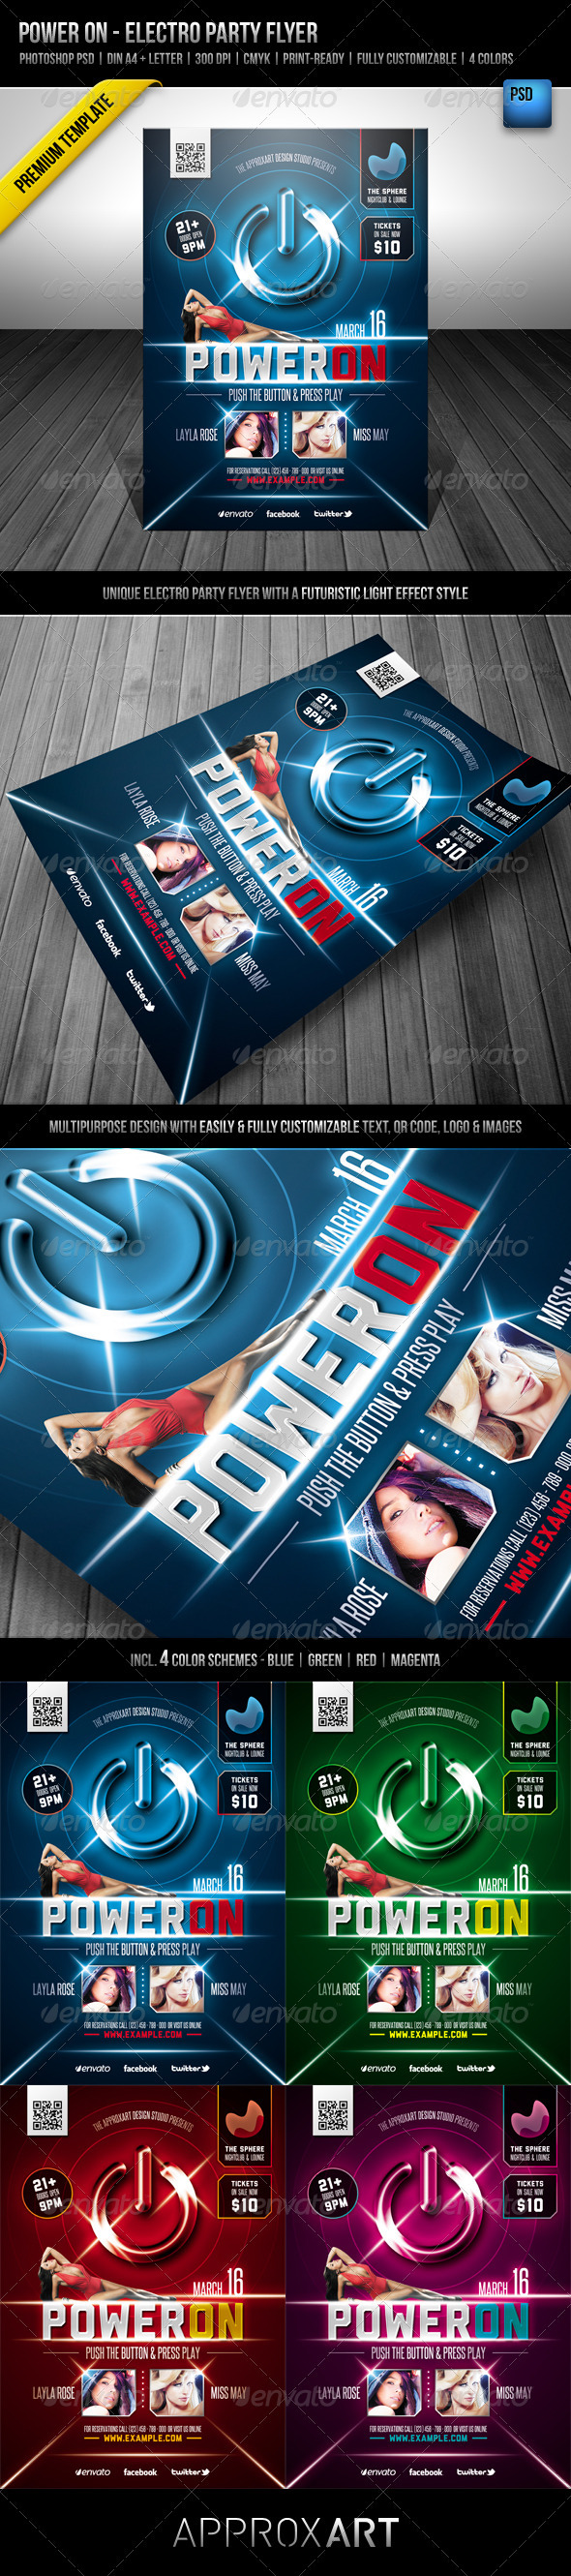 Power On - Electro Party Flyer - Clubs & Parties Events